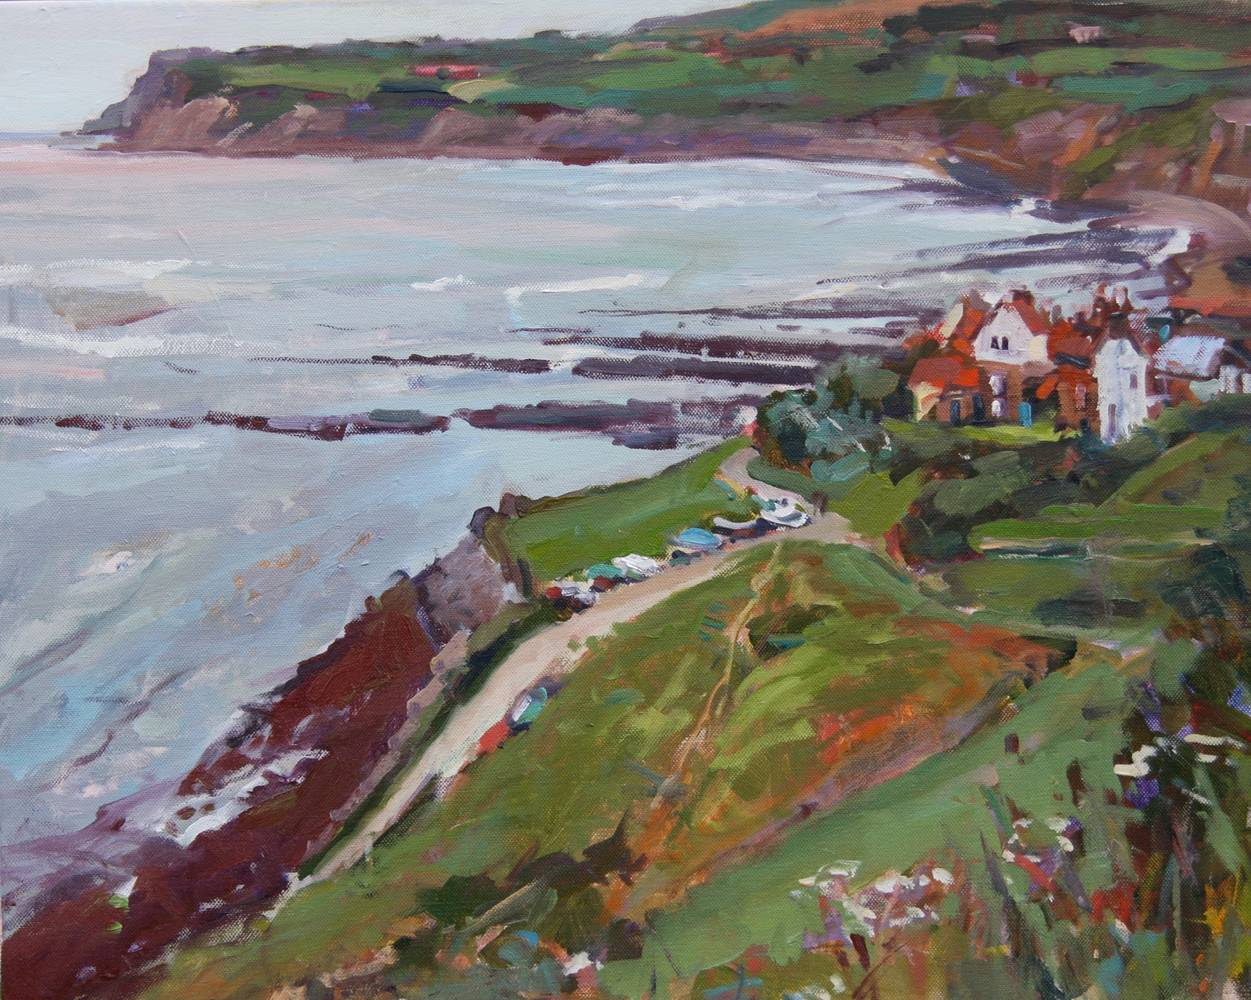 Oil painting Robin Hood's Bay by Susette Gertsch